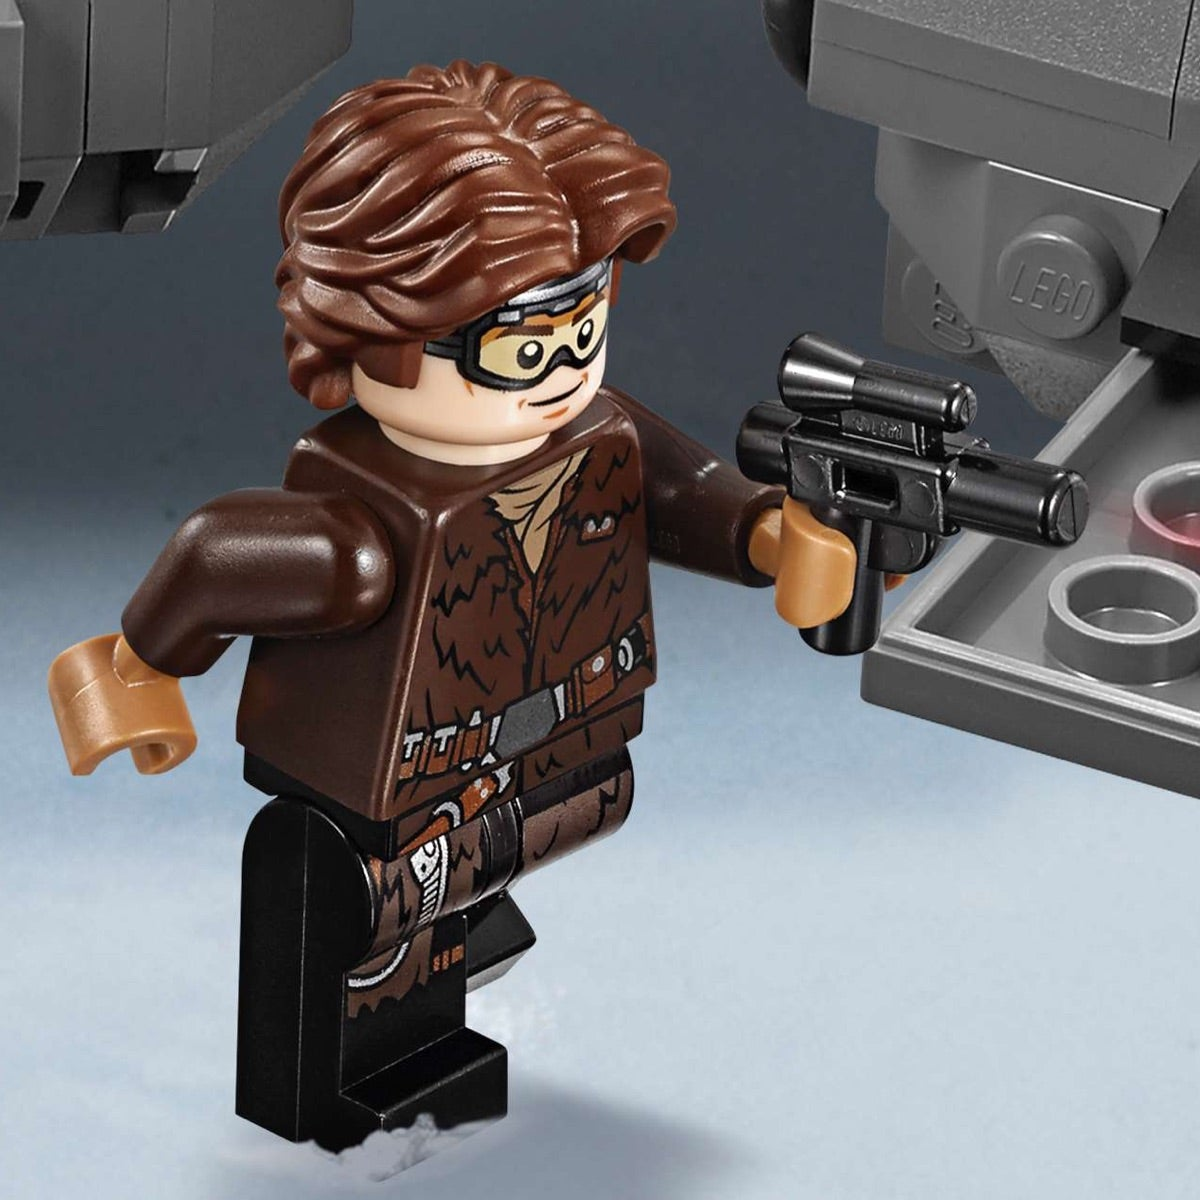 Han Solo  old Star Wars minifigure movie toy figure